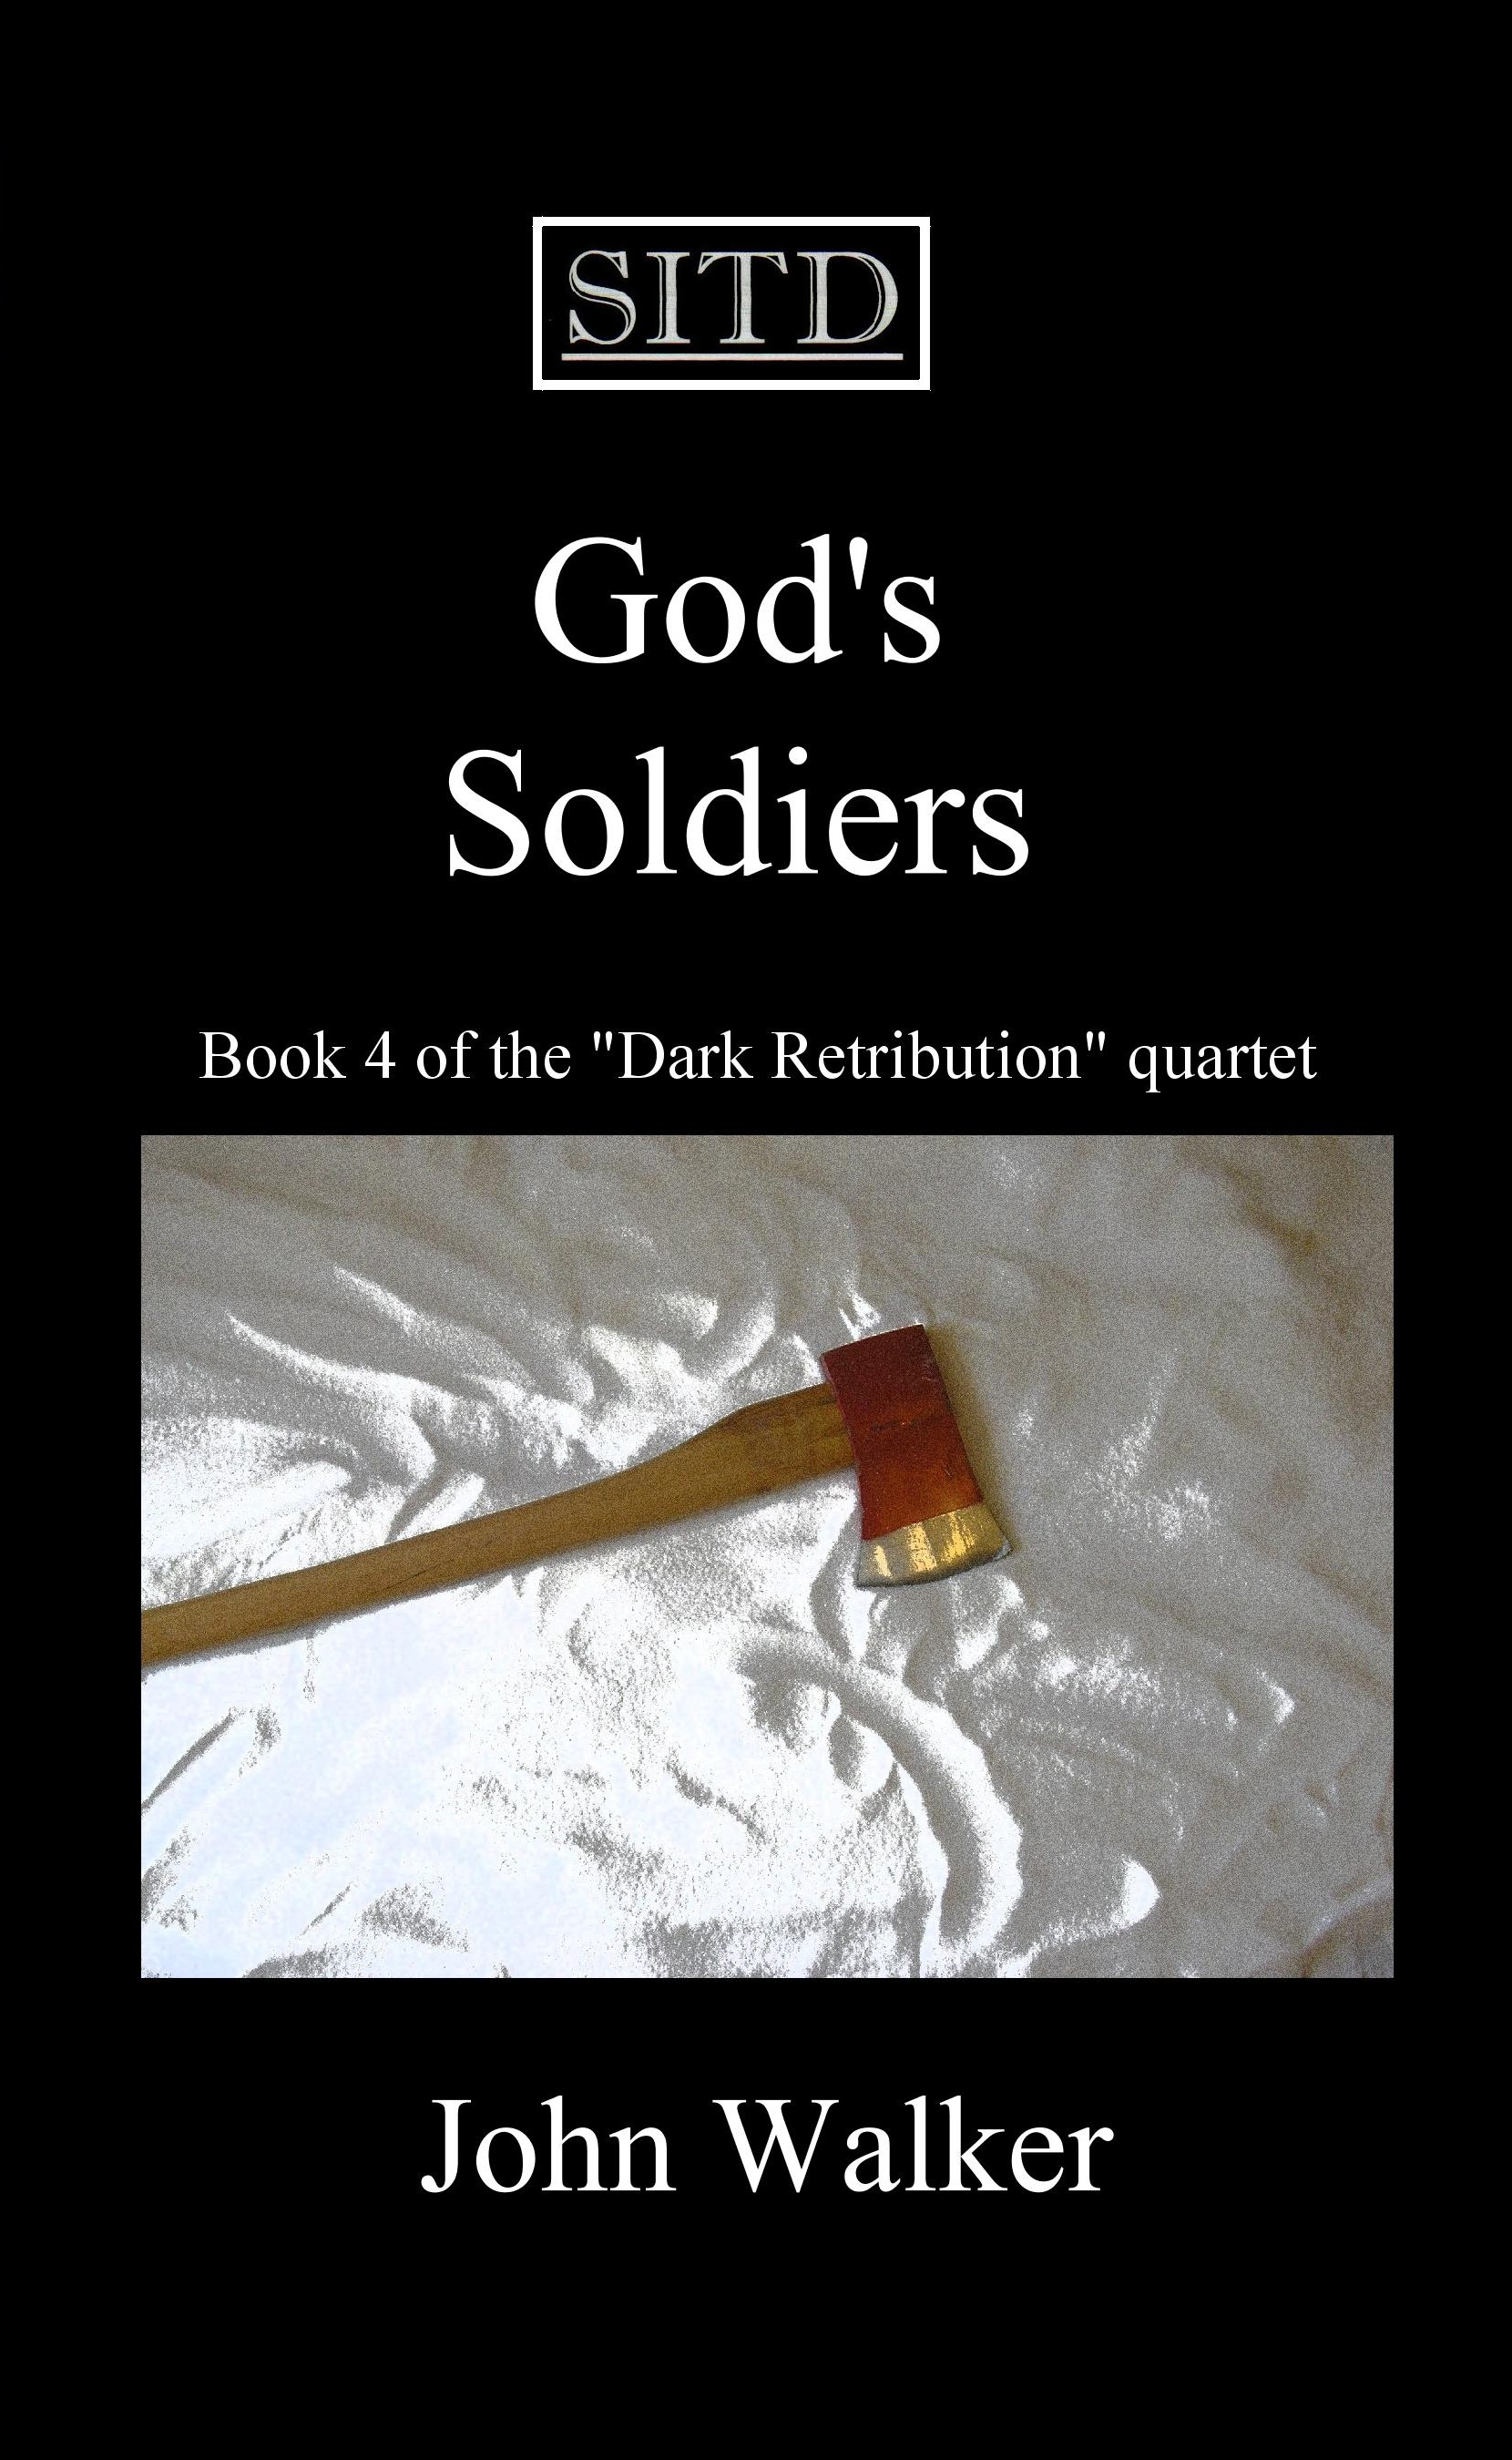 God's Soldiers